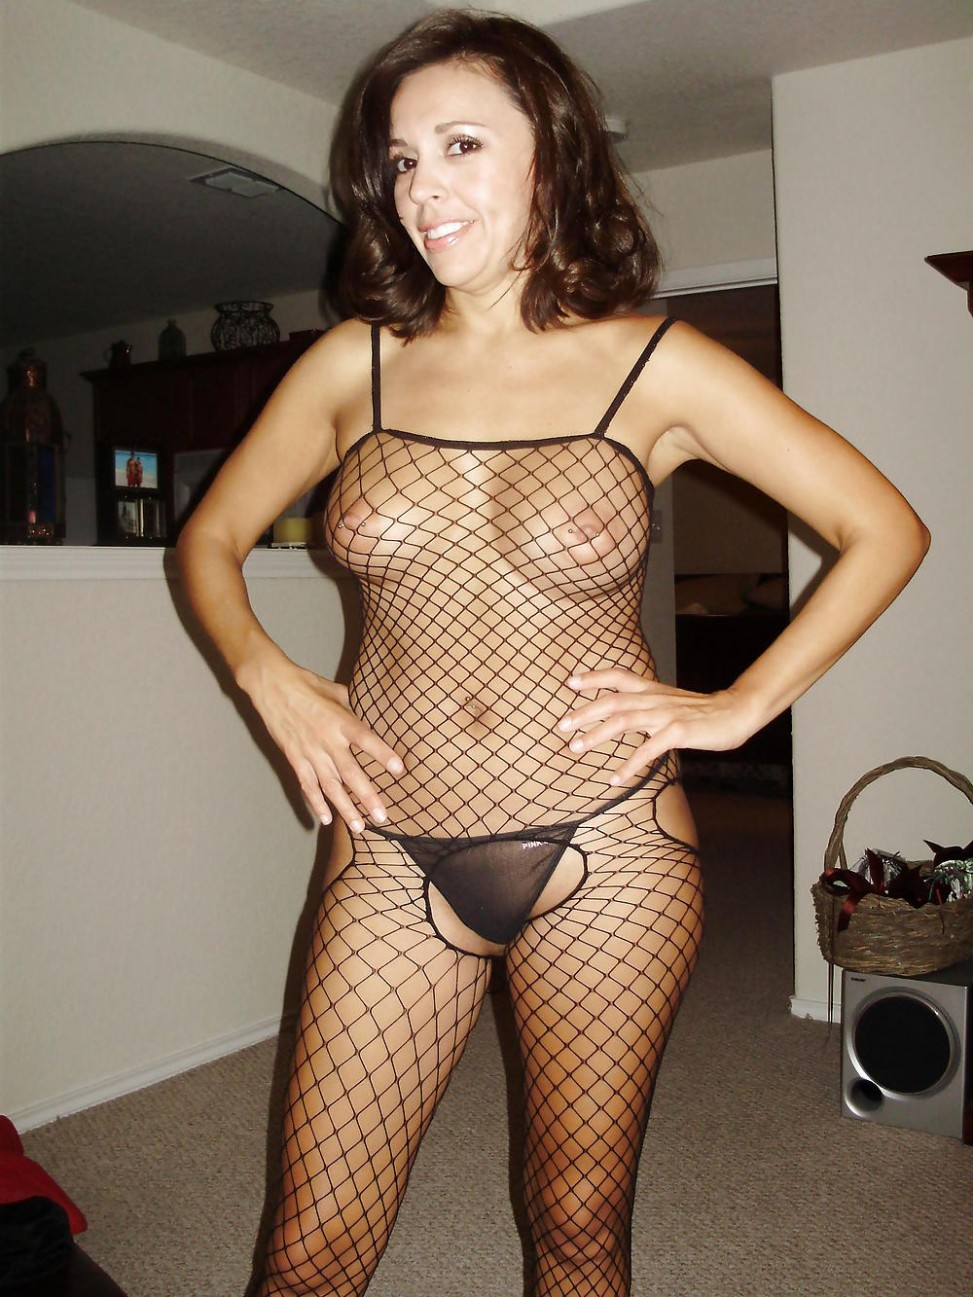 A real amateur milf swinger my 2 voyeurcams live 24h 6